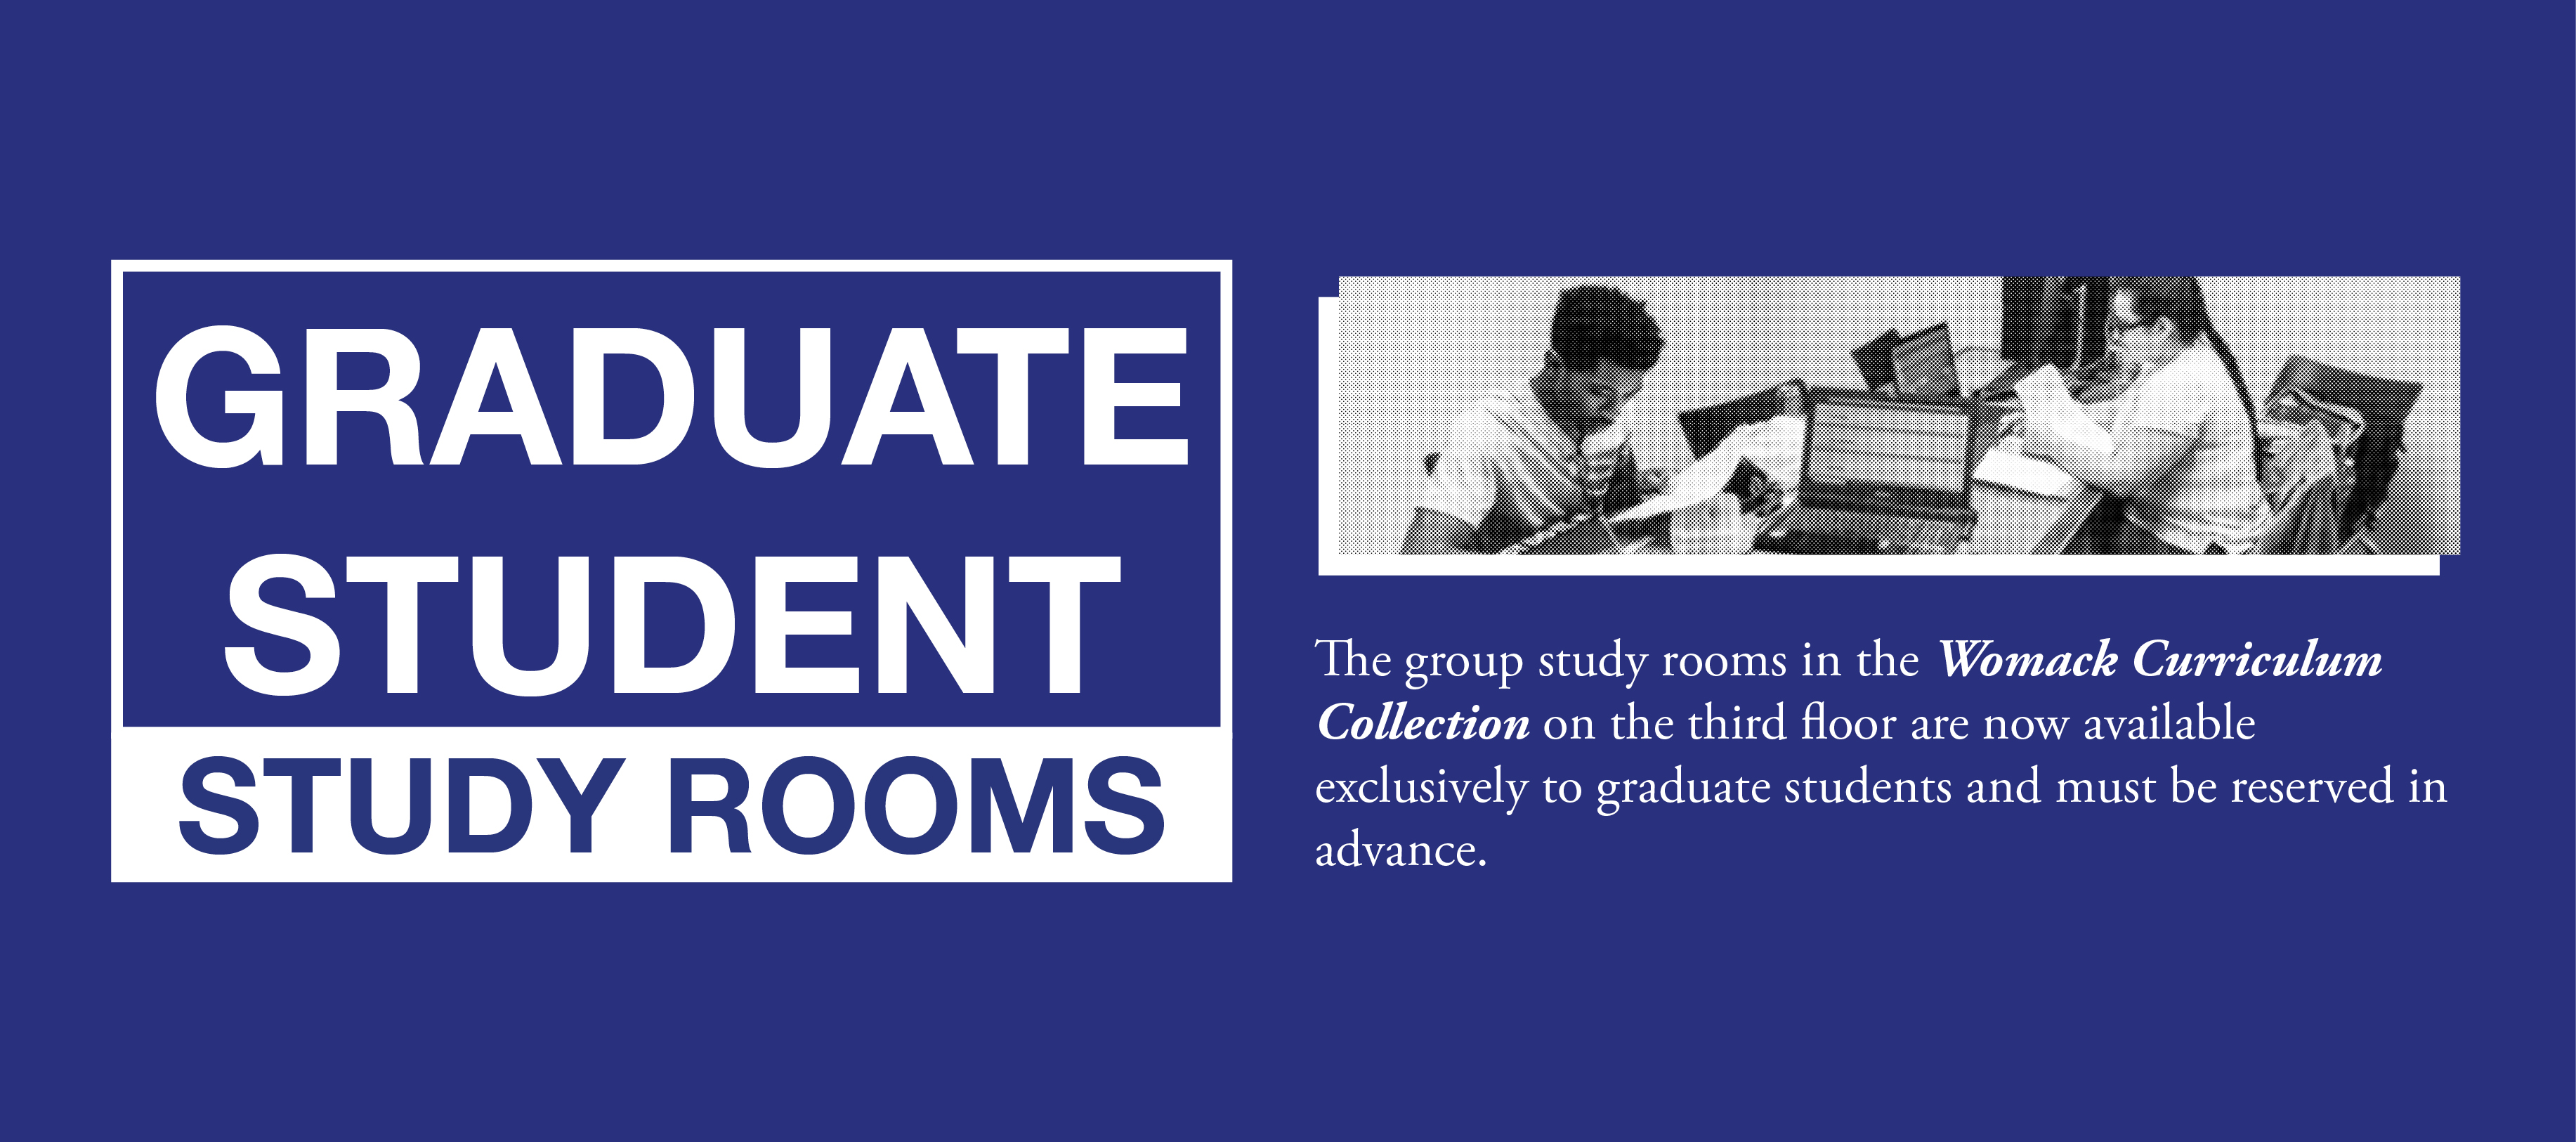 New Graduate Student Study Rooms